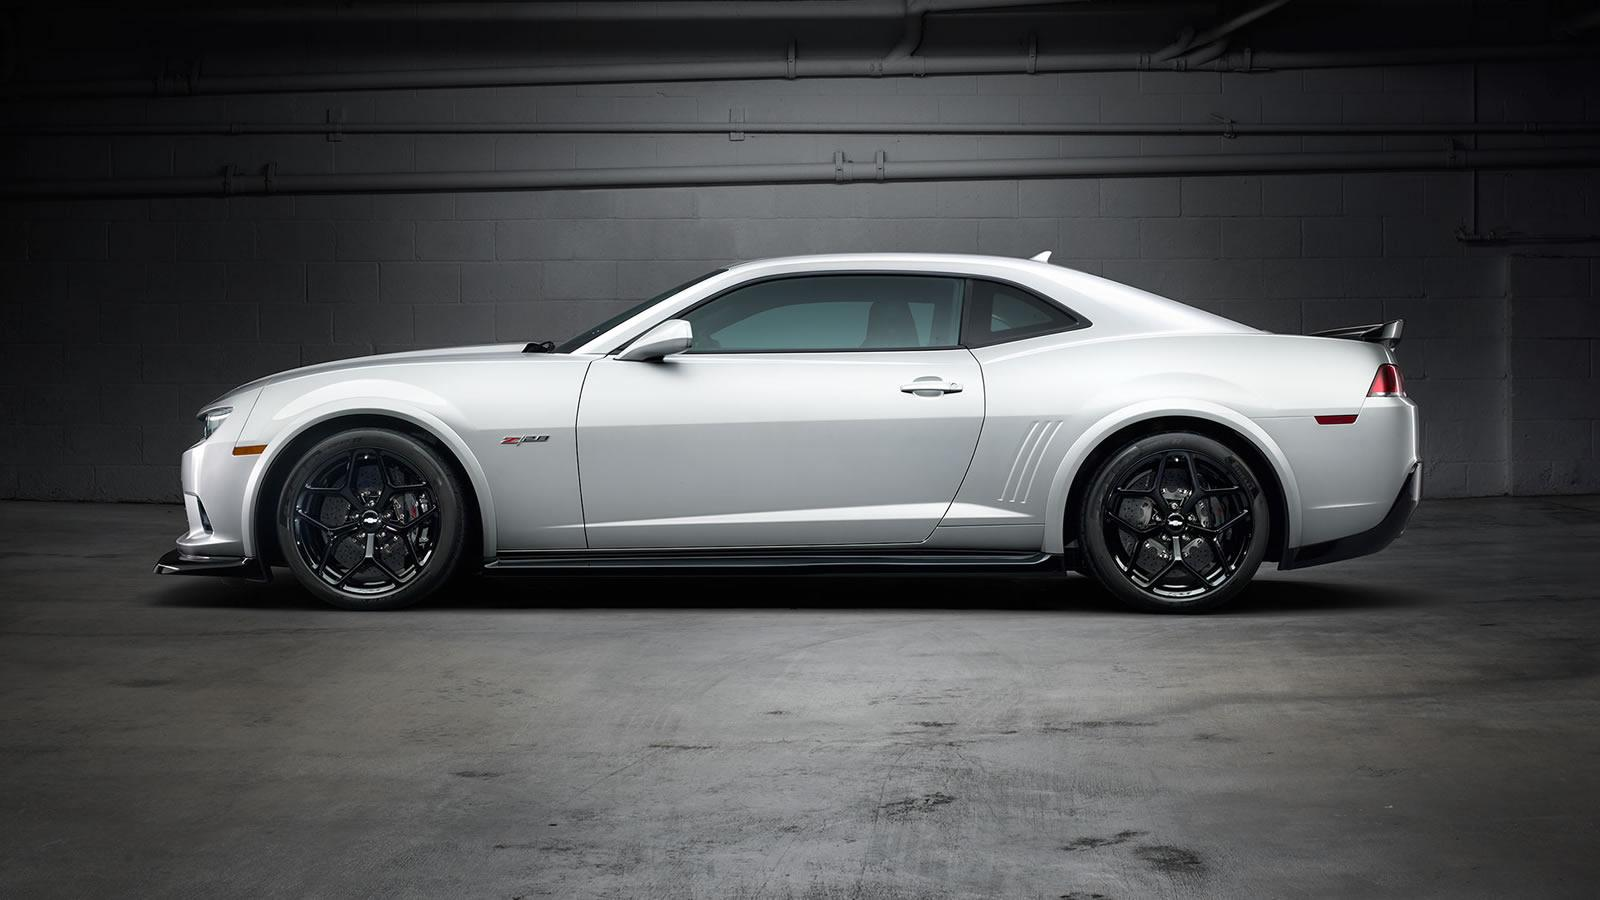 Camaro chevy camaro 2015 z28 : 2015 Camaro Z28 side view - NO Car NO Fun! Muscle Cars and Power ...